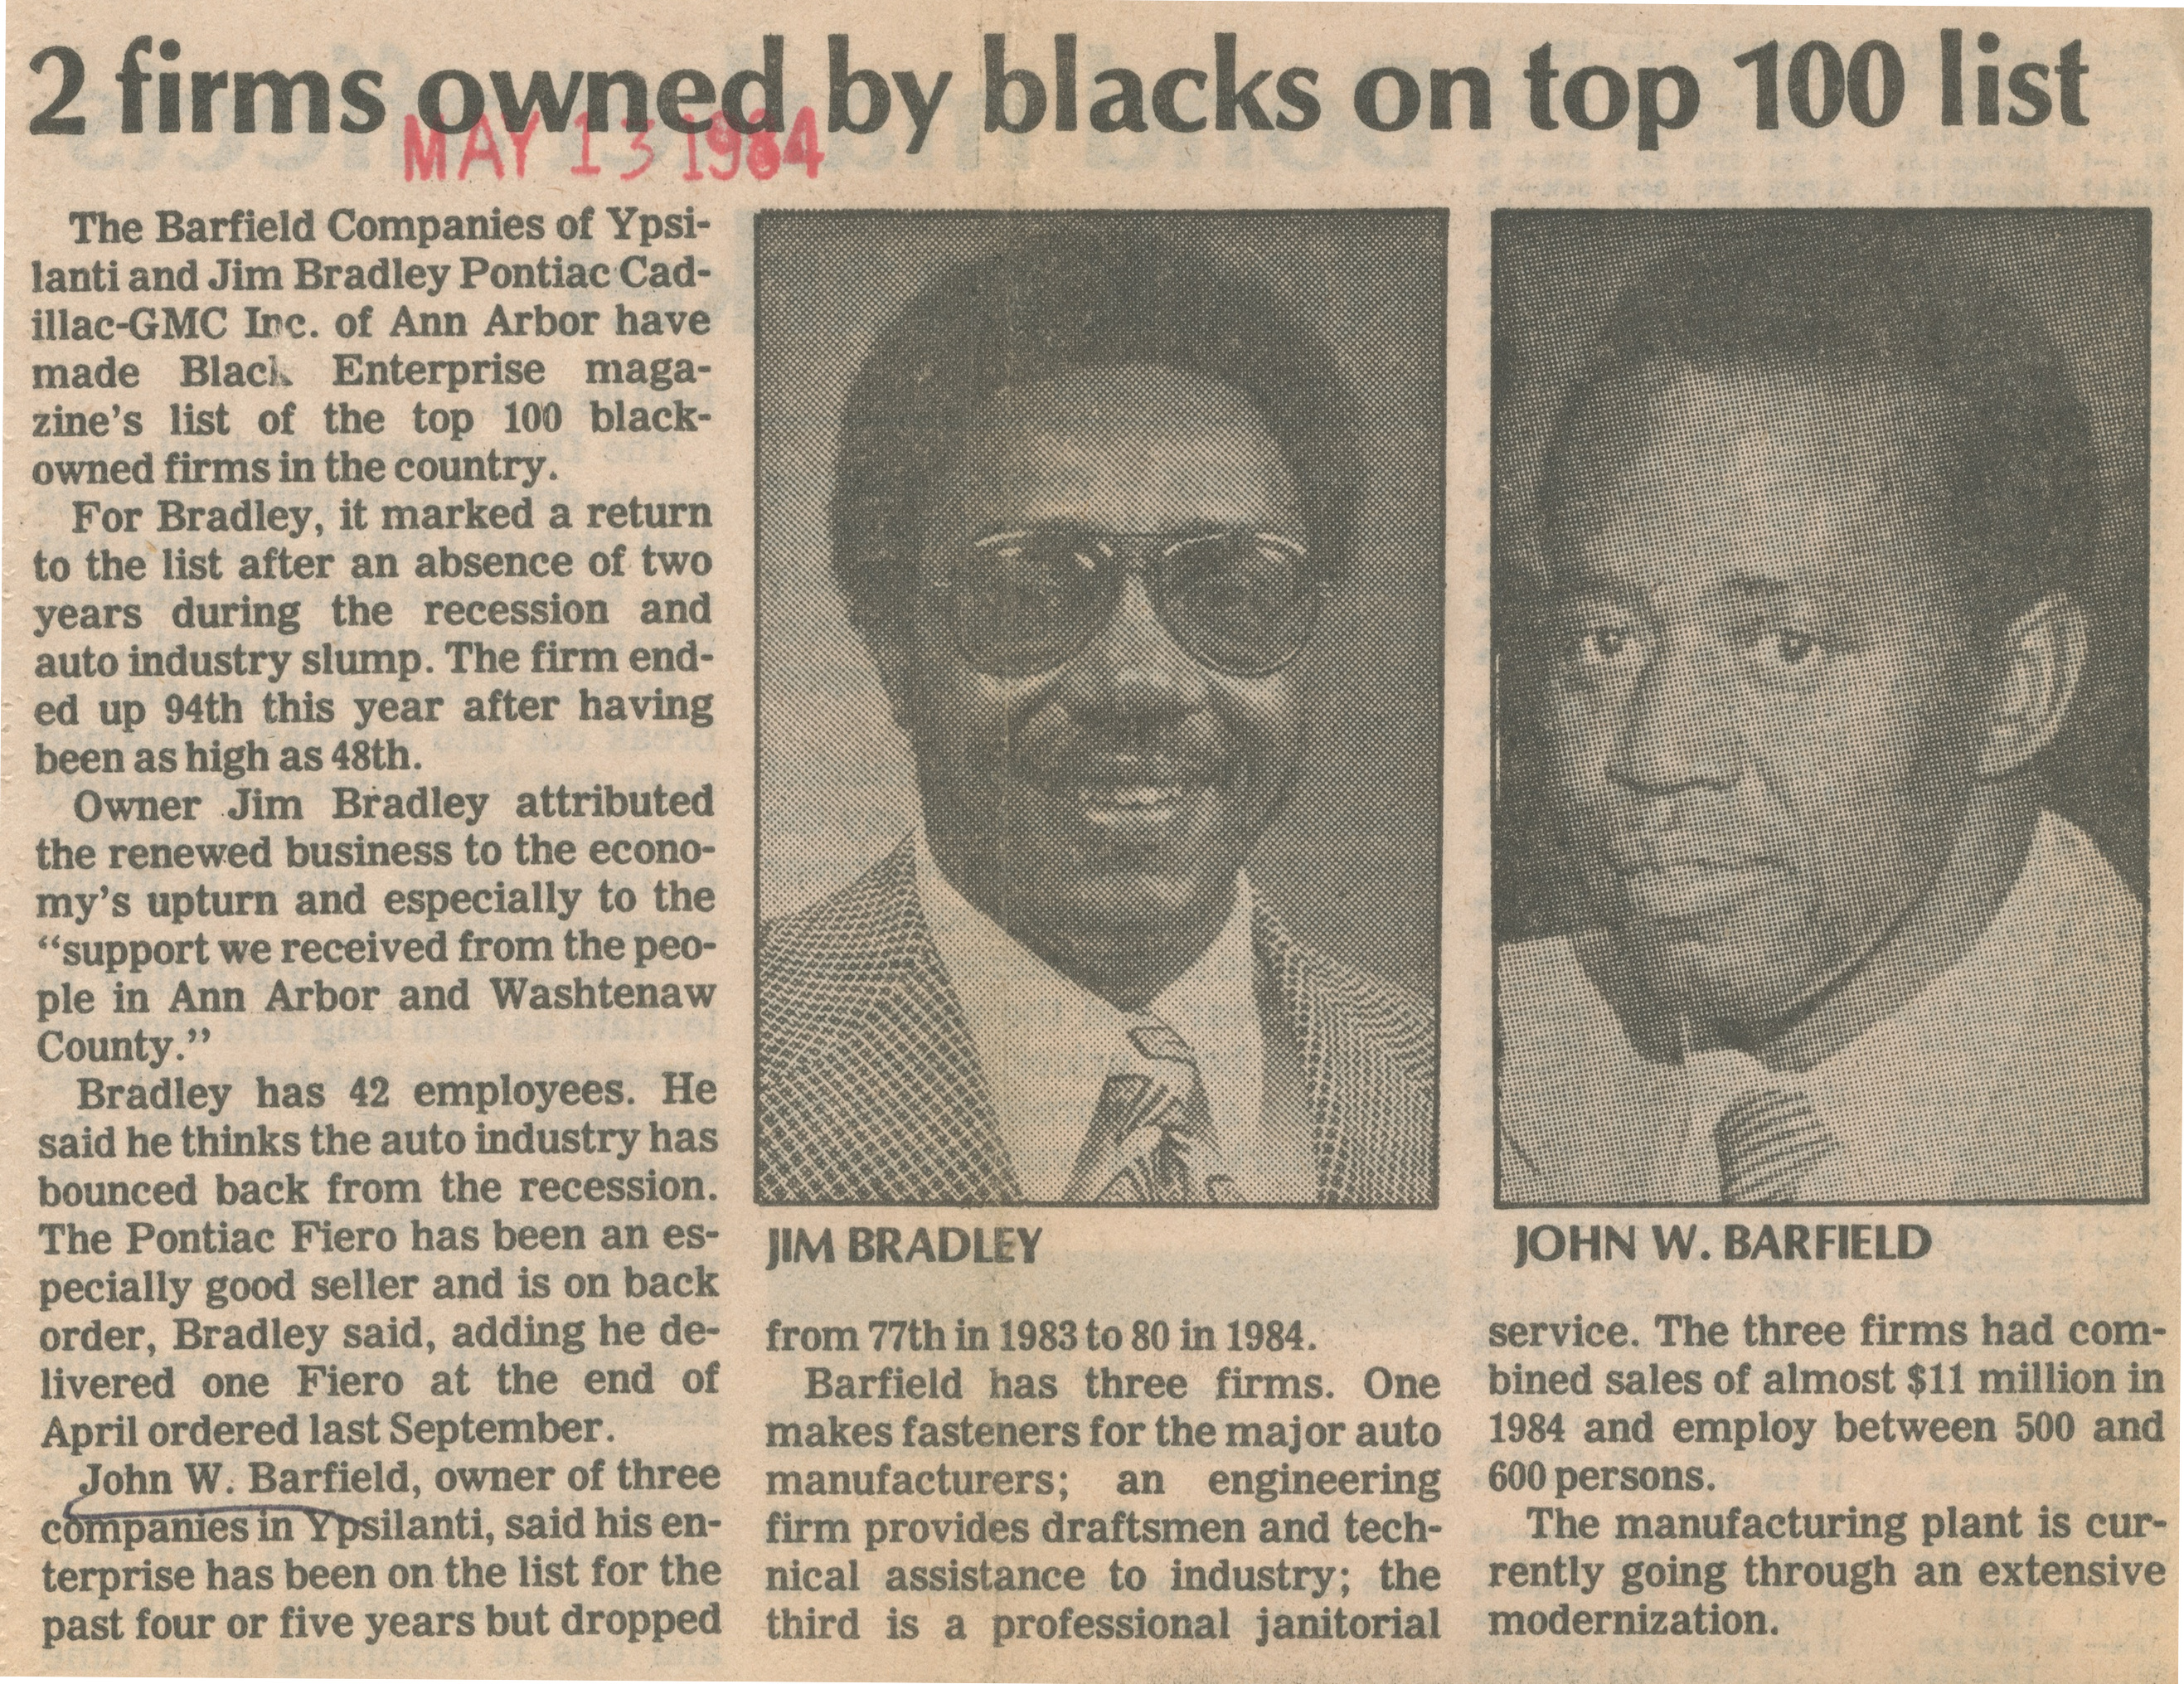 2 Firms Owned By Blacks On Top 100 List image